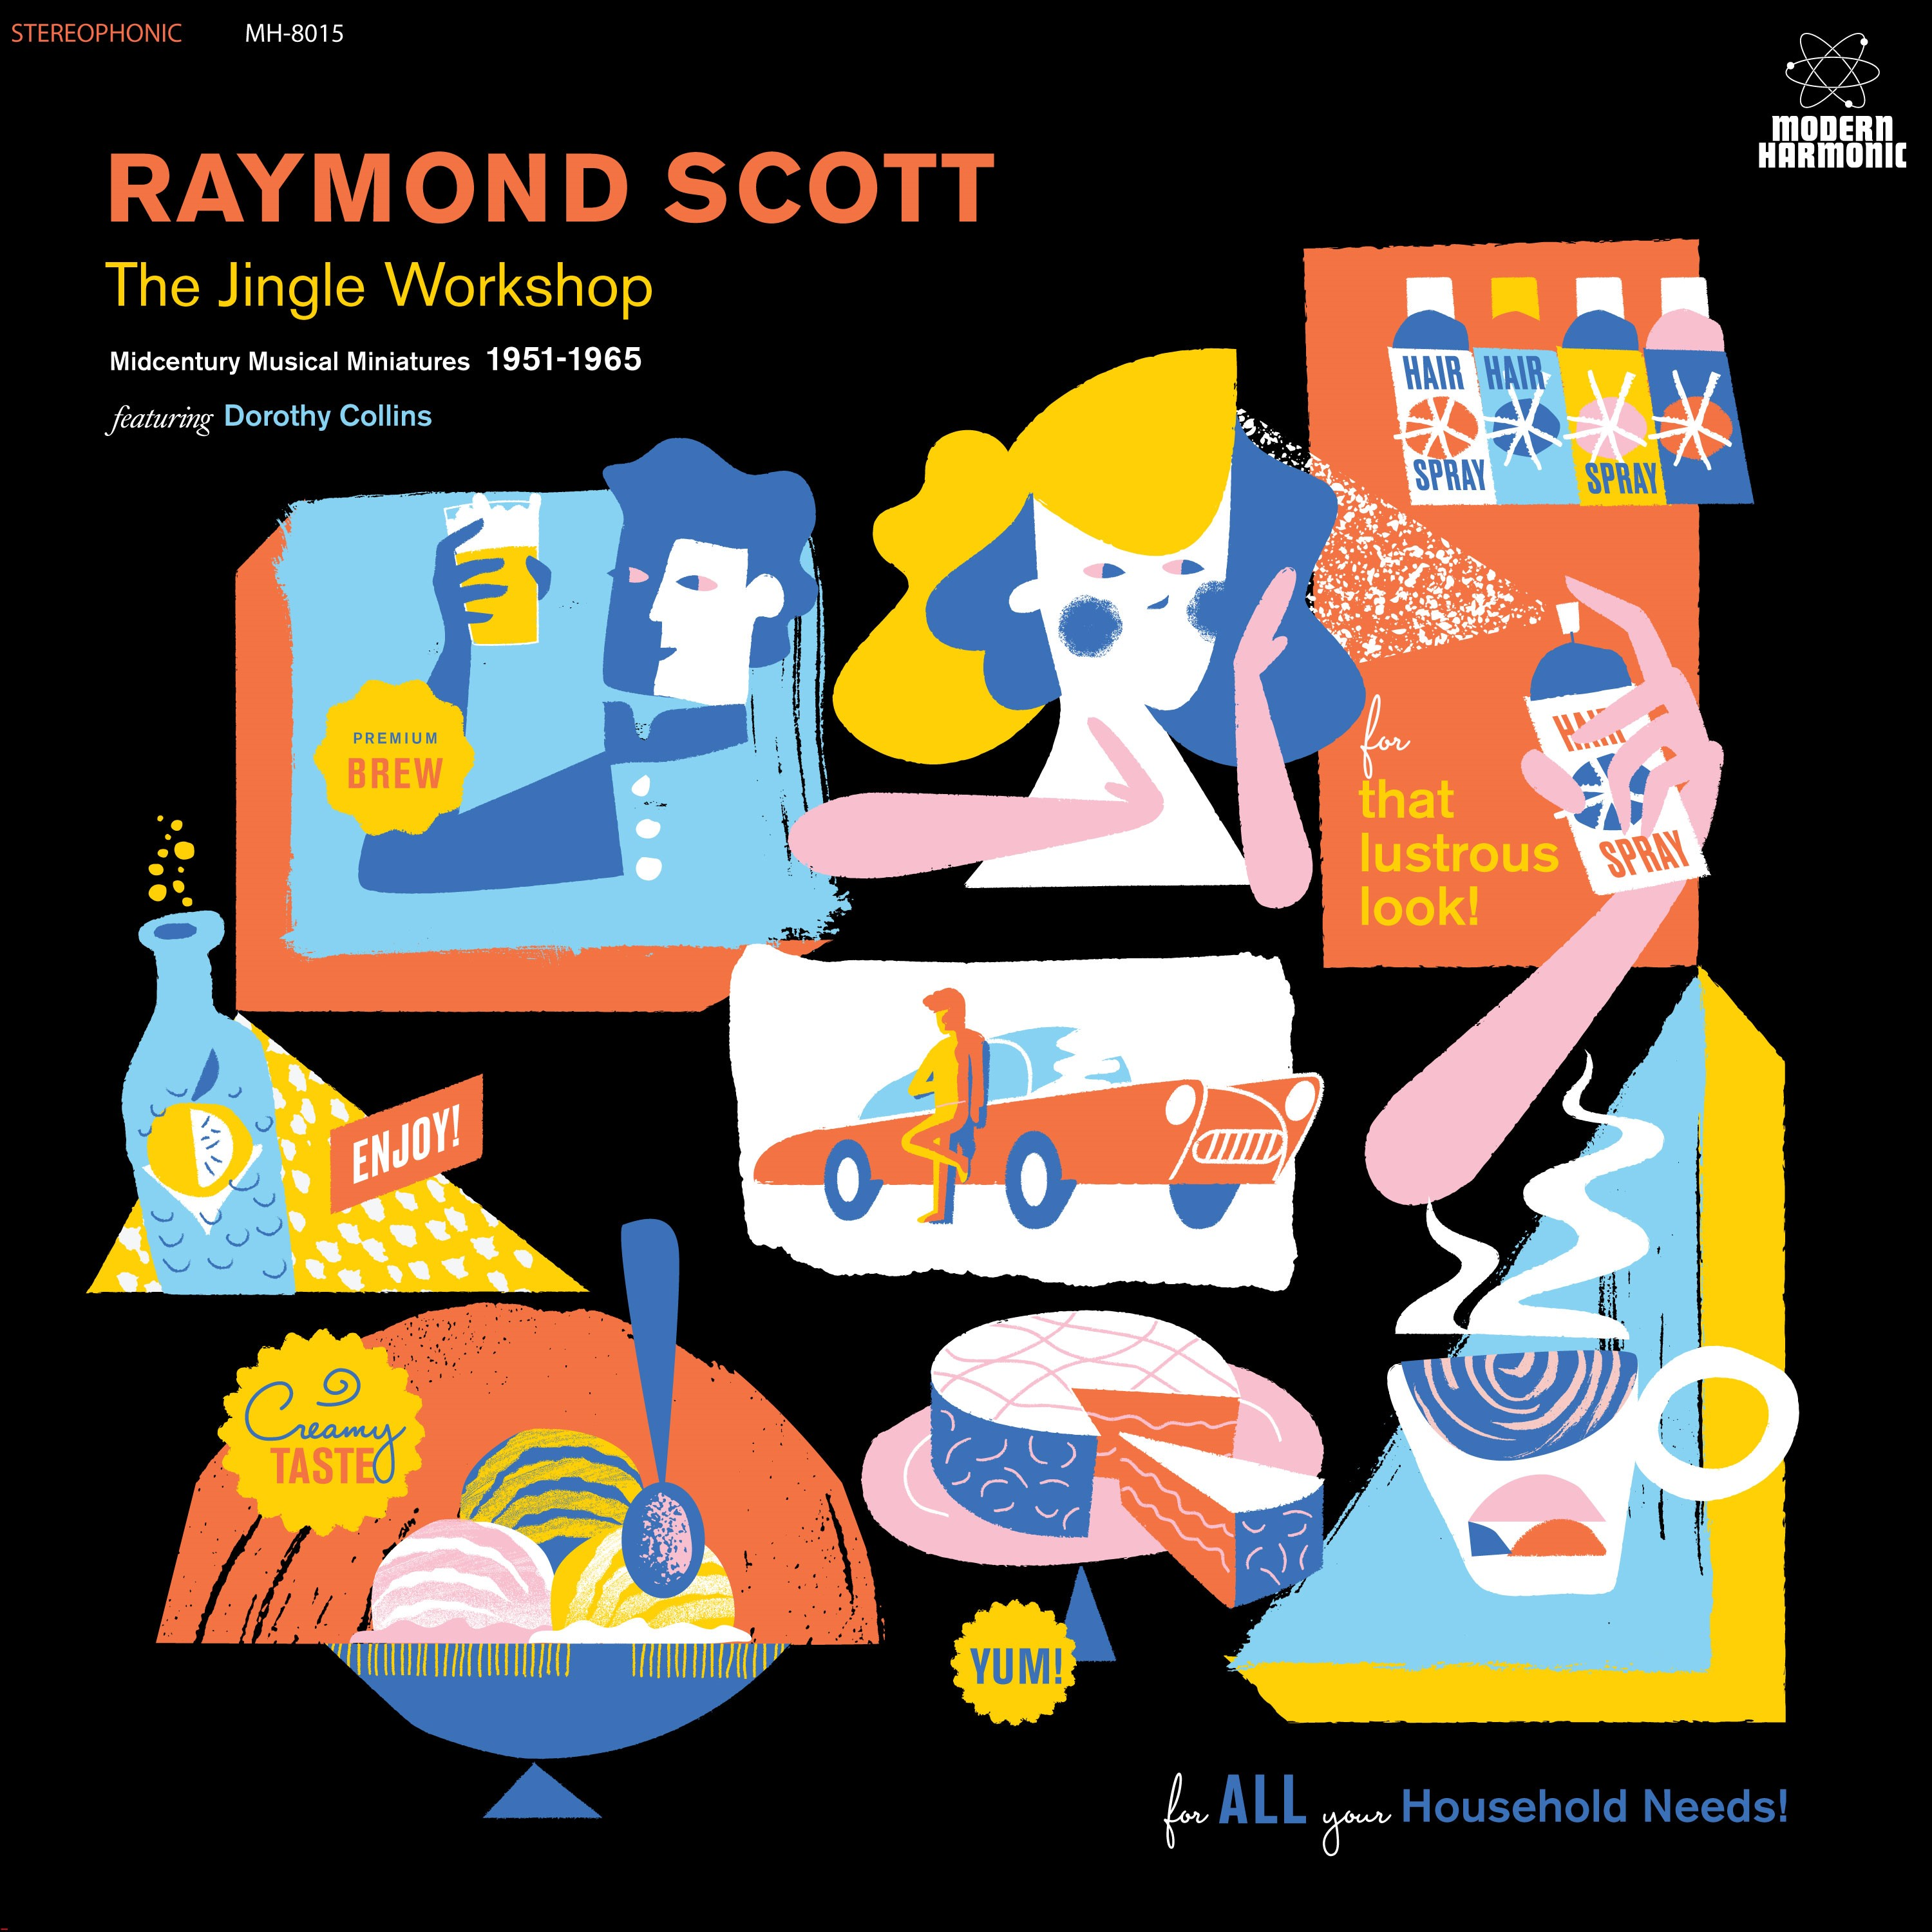 Raymond Scott - The Jingle Workshop: Midcentury Musical Miniatures 1951-1965 [RSD BF 2019]